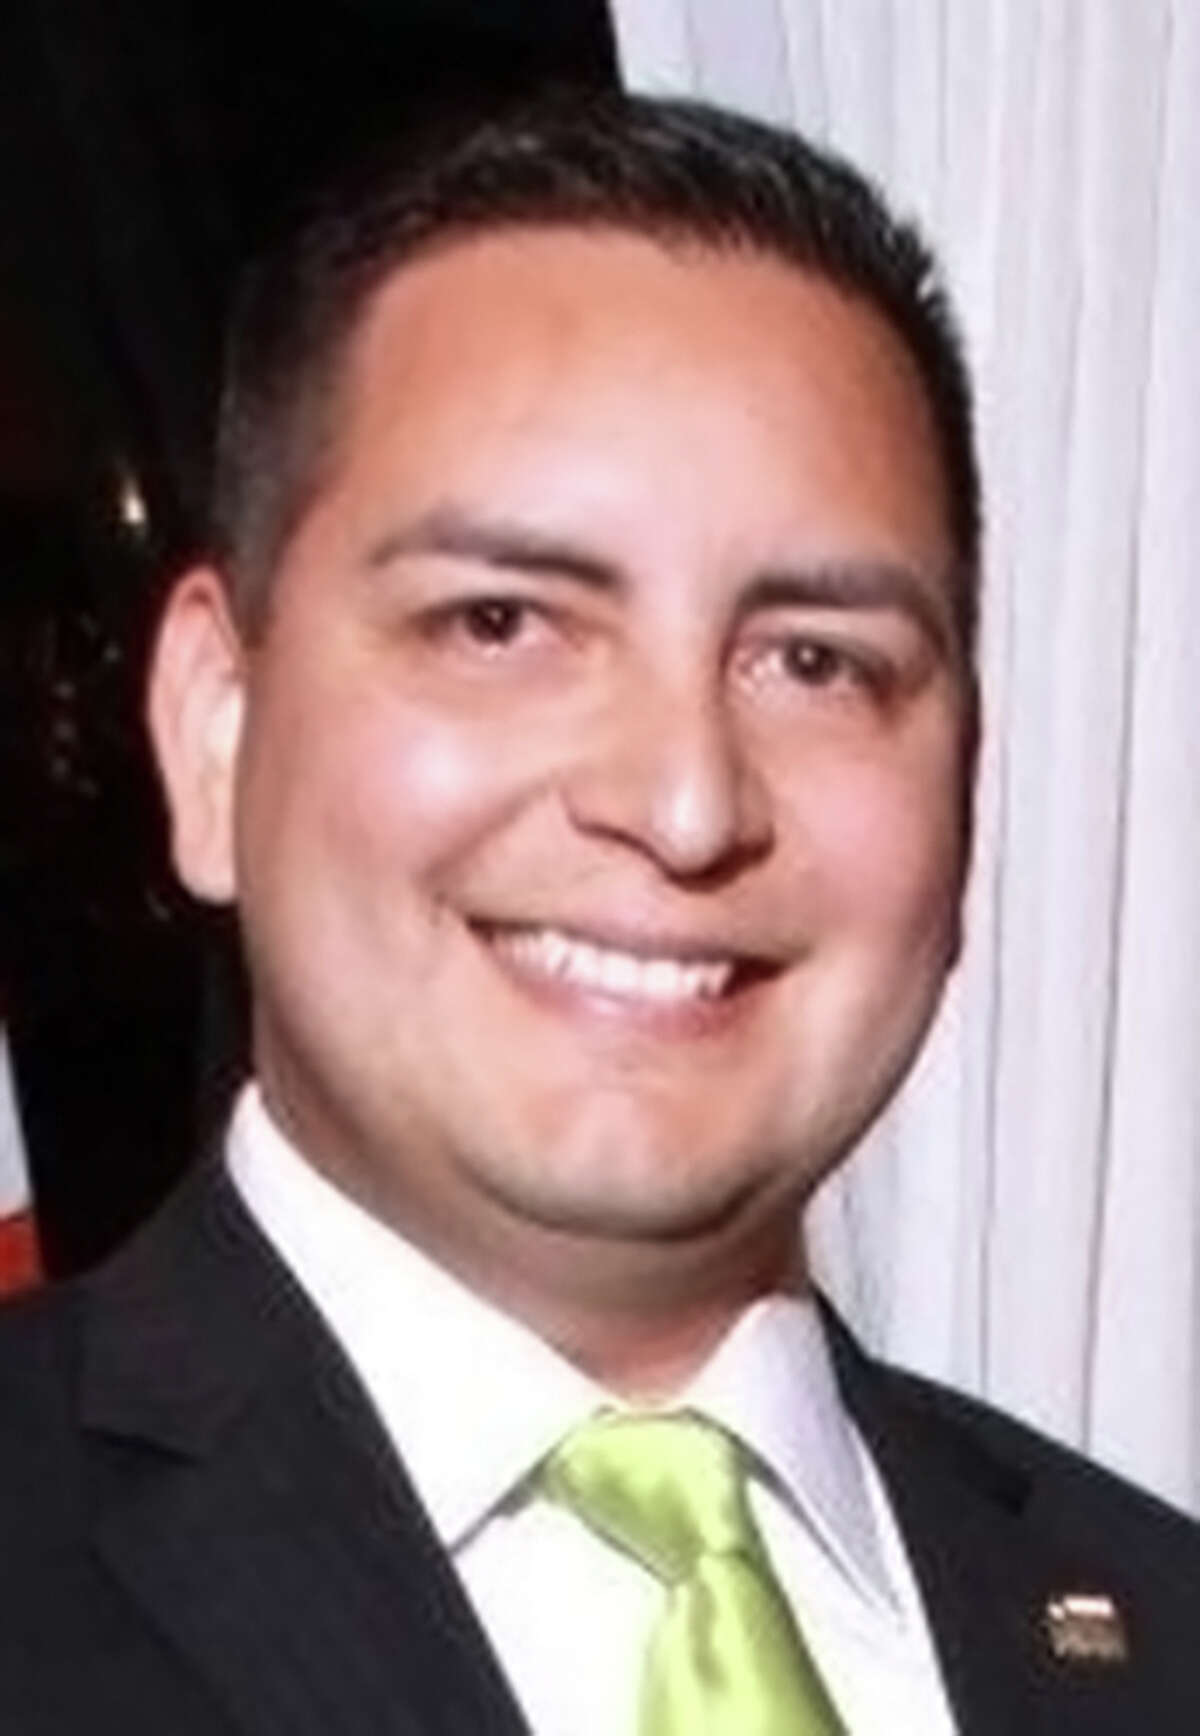 Democrat Philip Cortez was hired by developer L.H. Devco in 2014, while he was a state lawmaker.